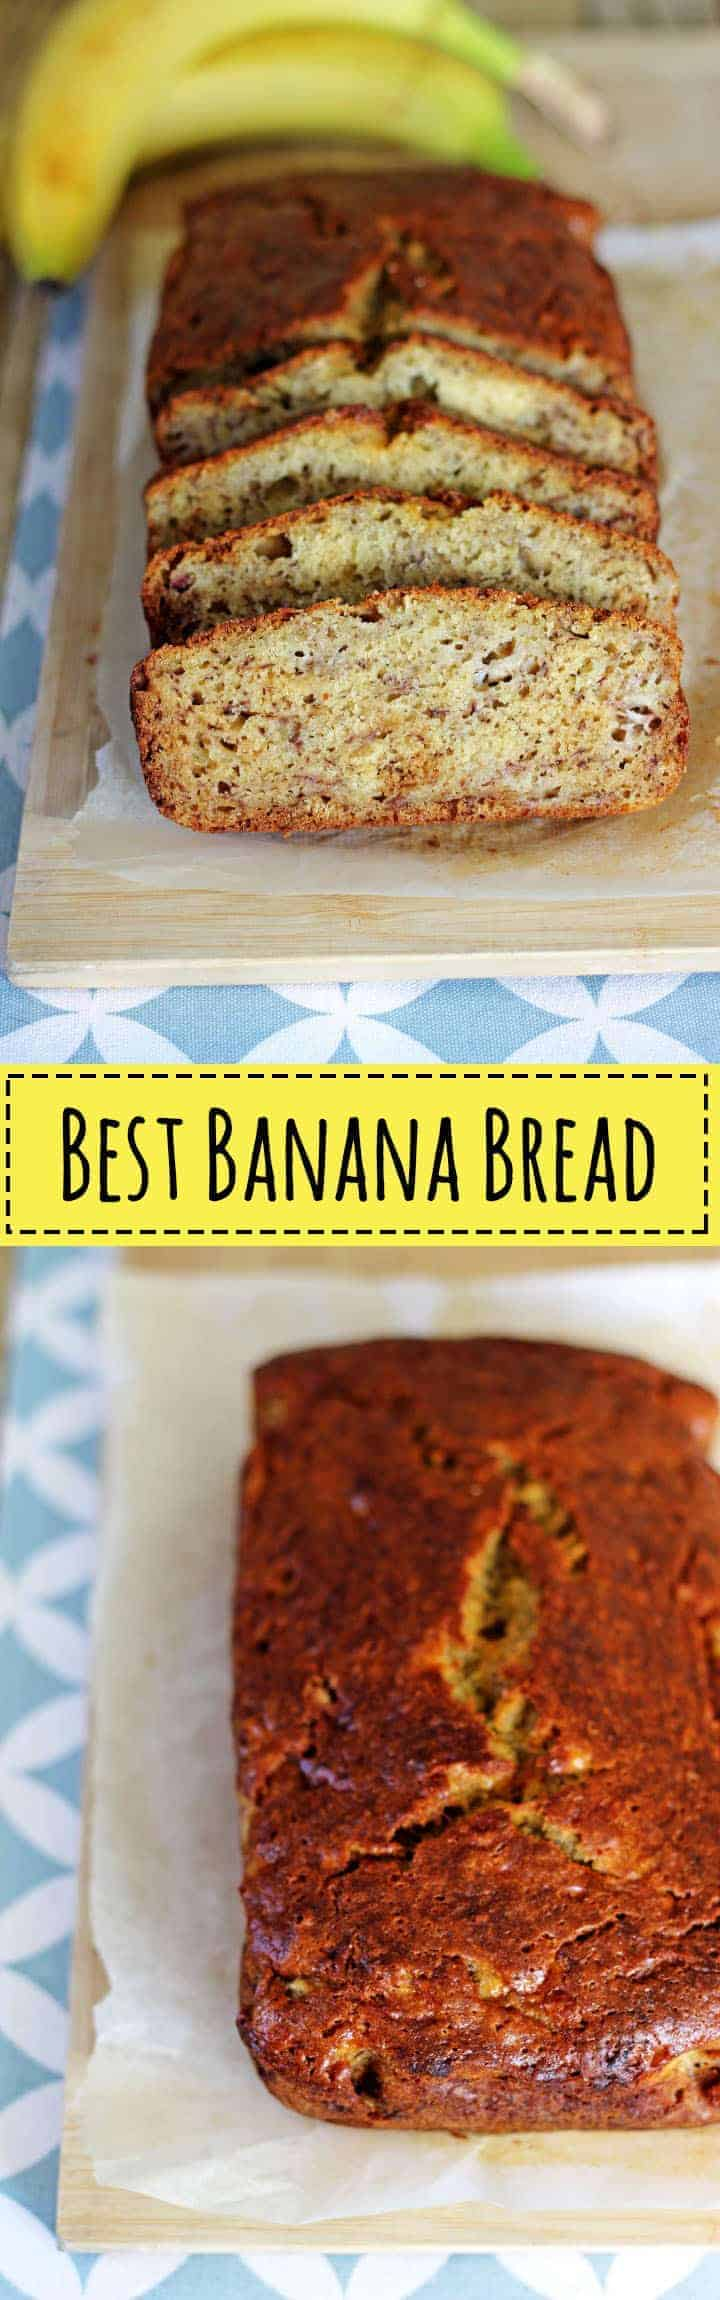 Classic easy banana bread recipe made in 1 bowl, and is ready to eat in 1 hour! | recipe at thekiwicountrygirl.com